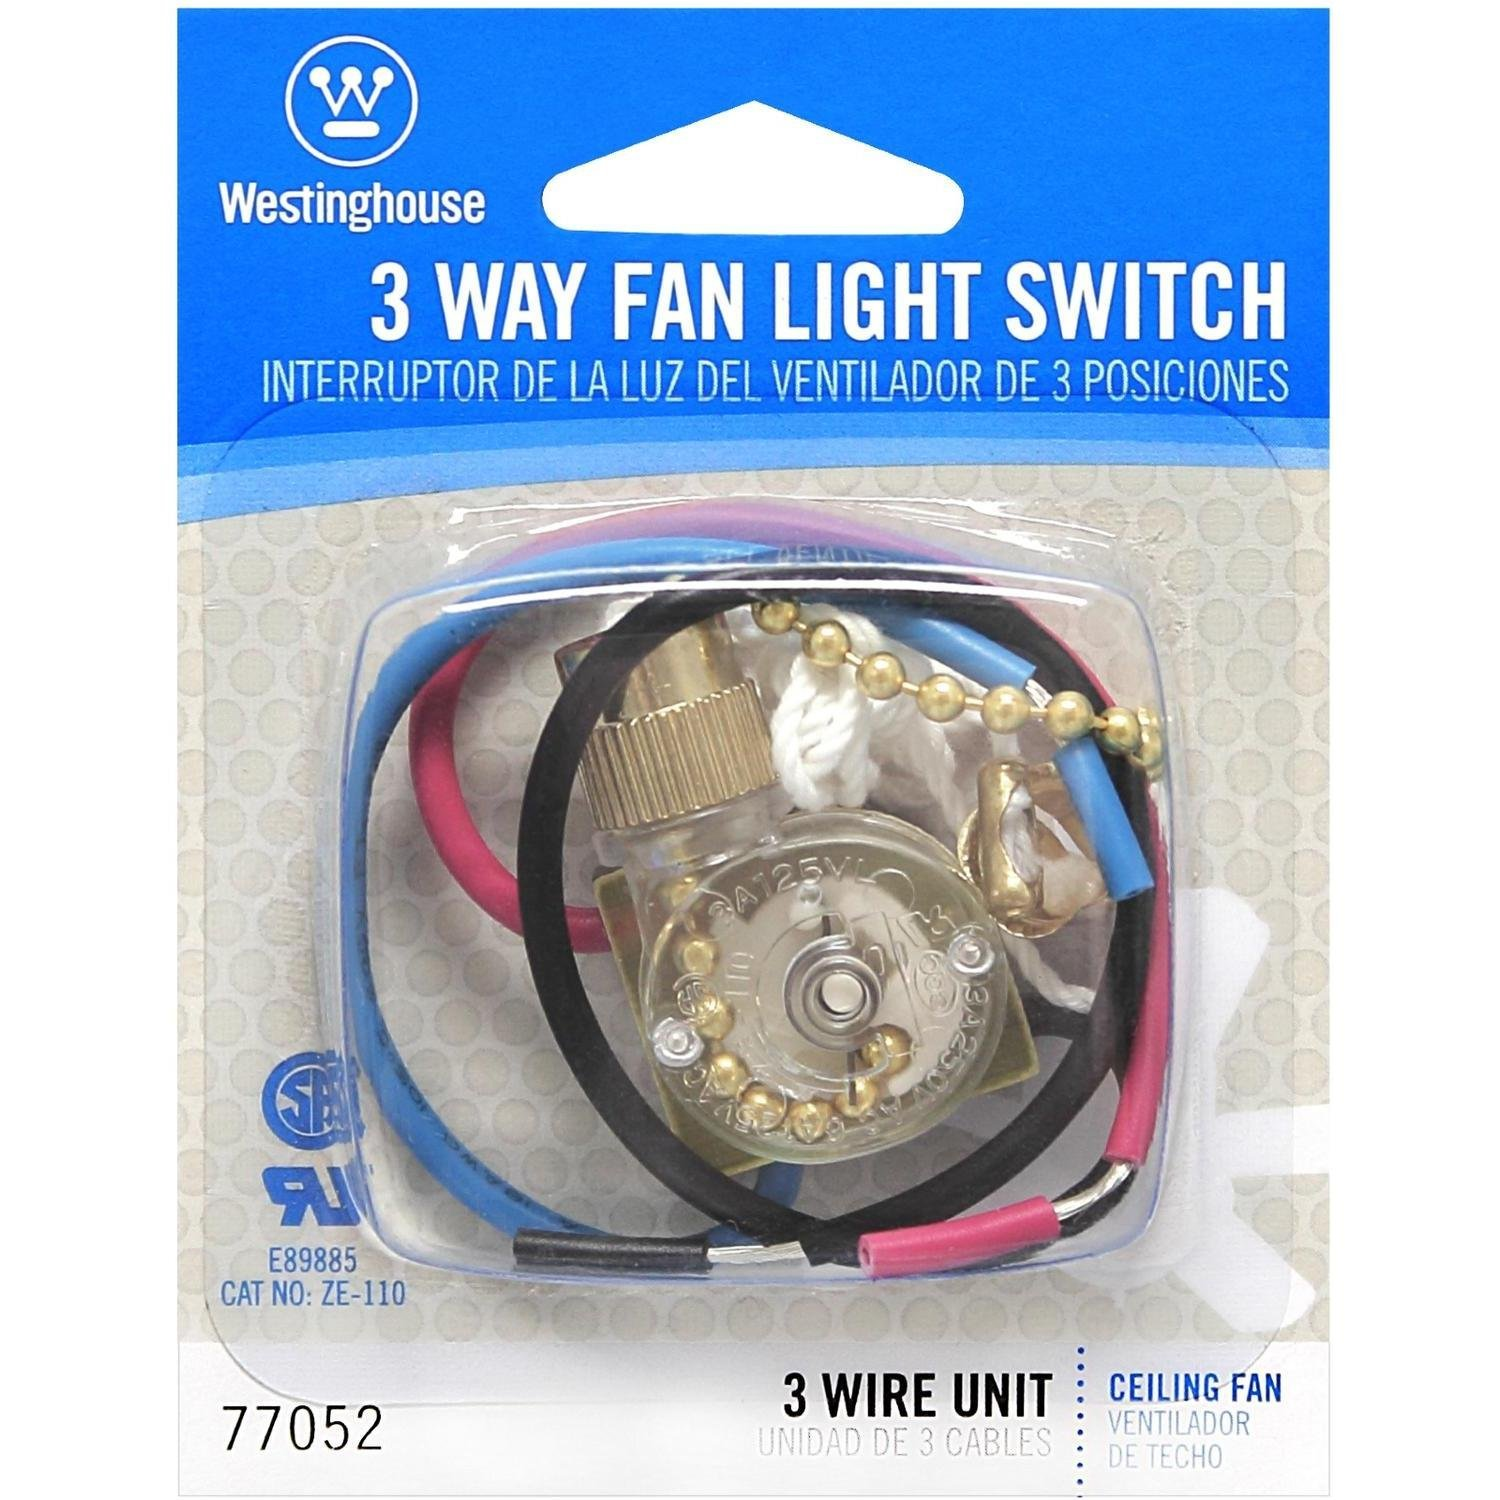 81aI8TpkaiL._SL1500_ westinghouse lighting corp 3 way fan light switch wall light westinghouse ceiling fan wiring diagram at couponss.co